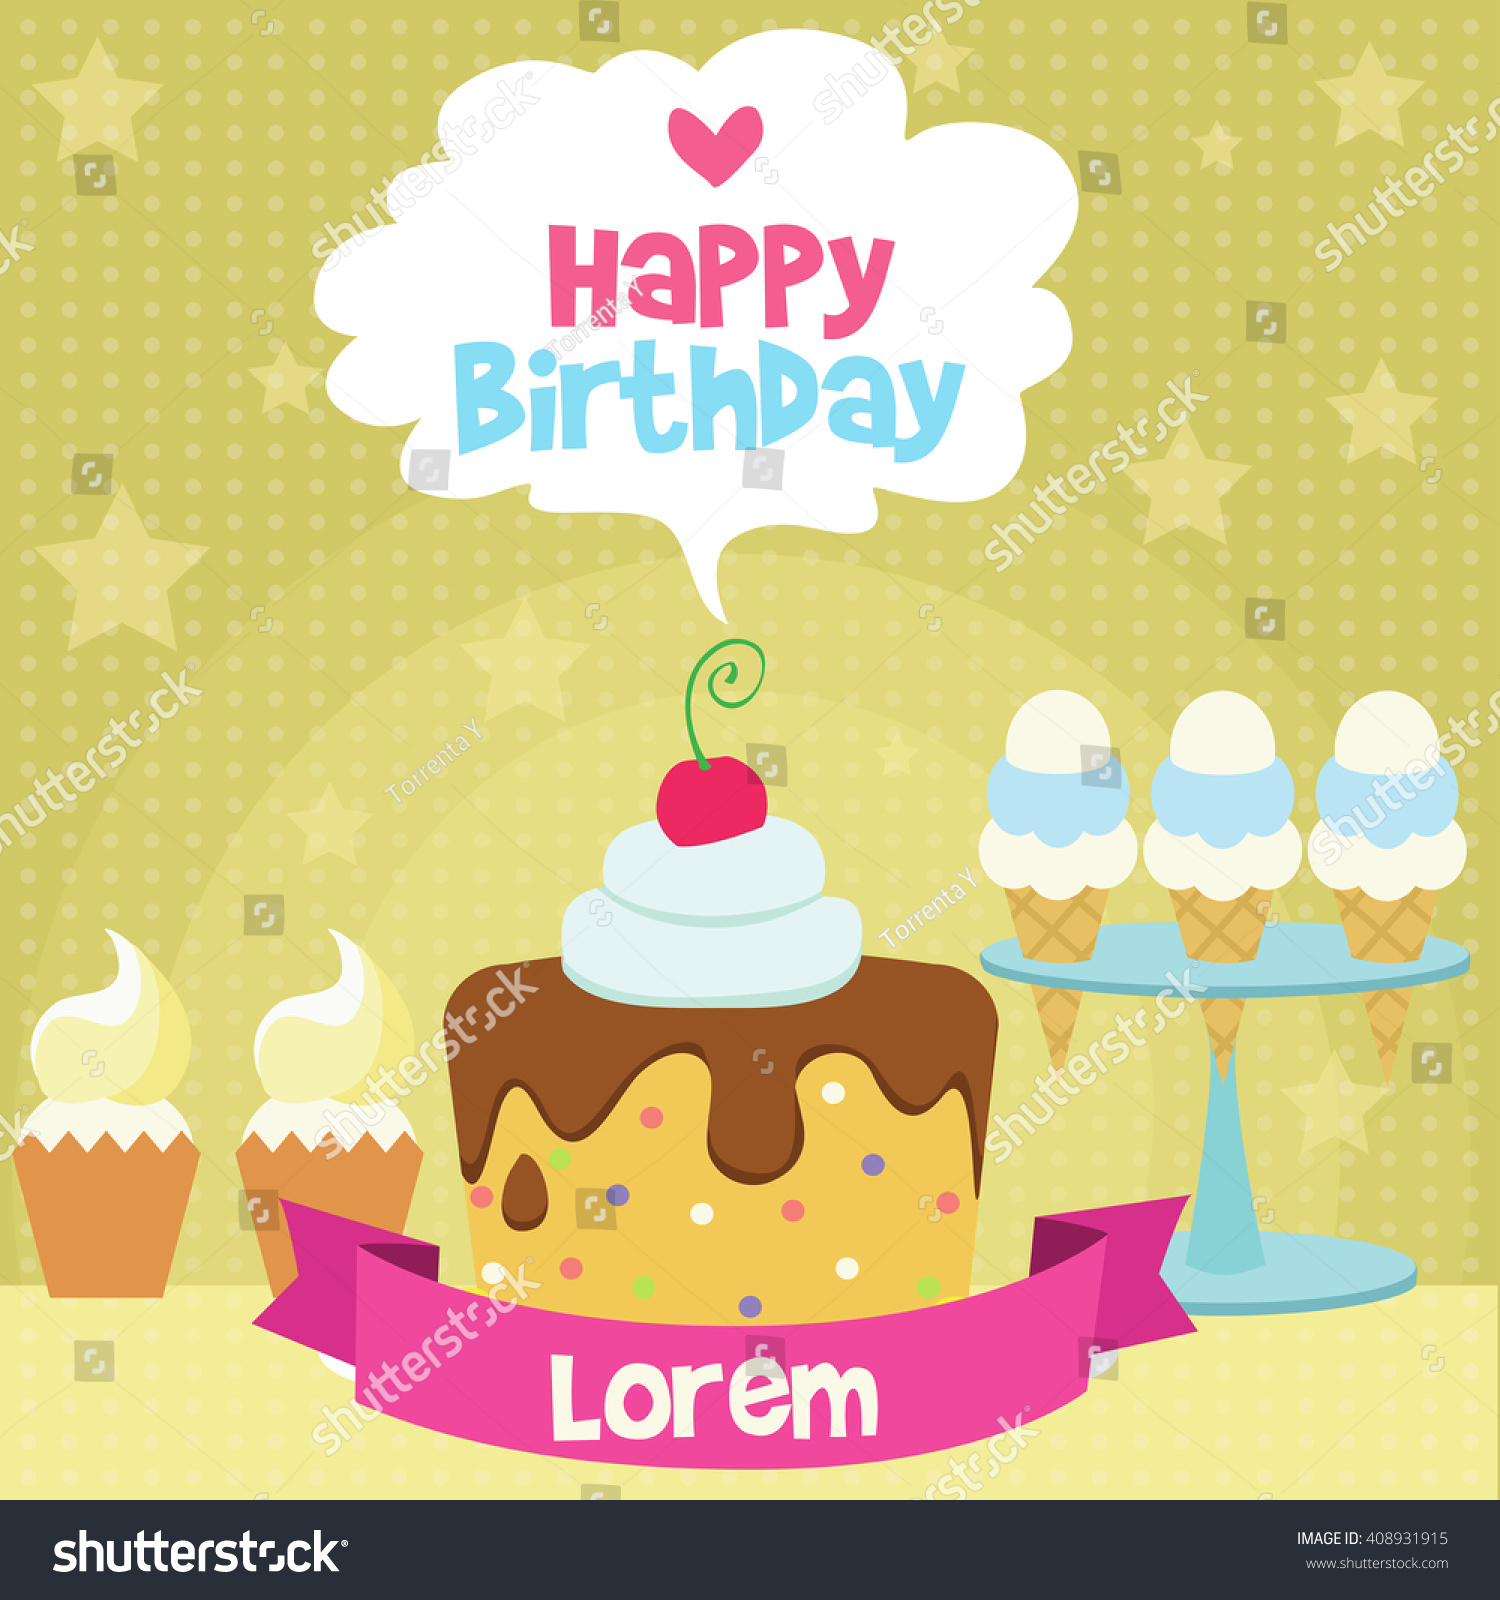 Awesome jacquie lawson birthday card pics laughterisaleap happy birthday card designs choice image free birthday cards bookmarktalkfo Images